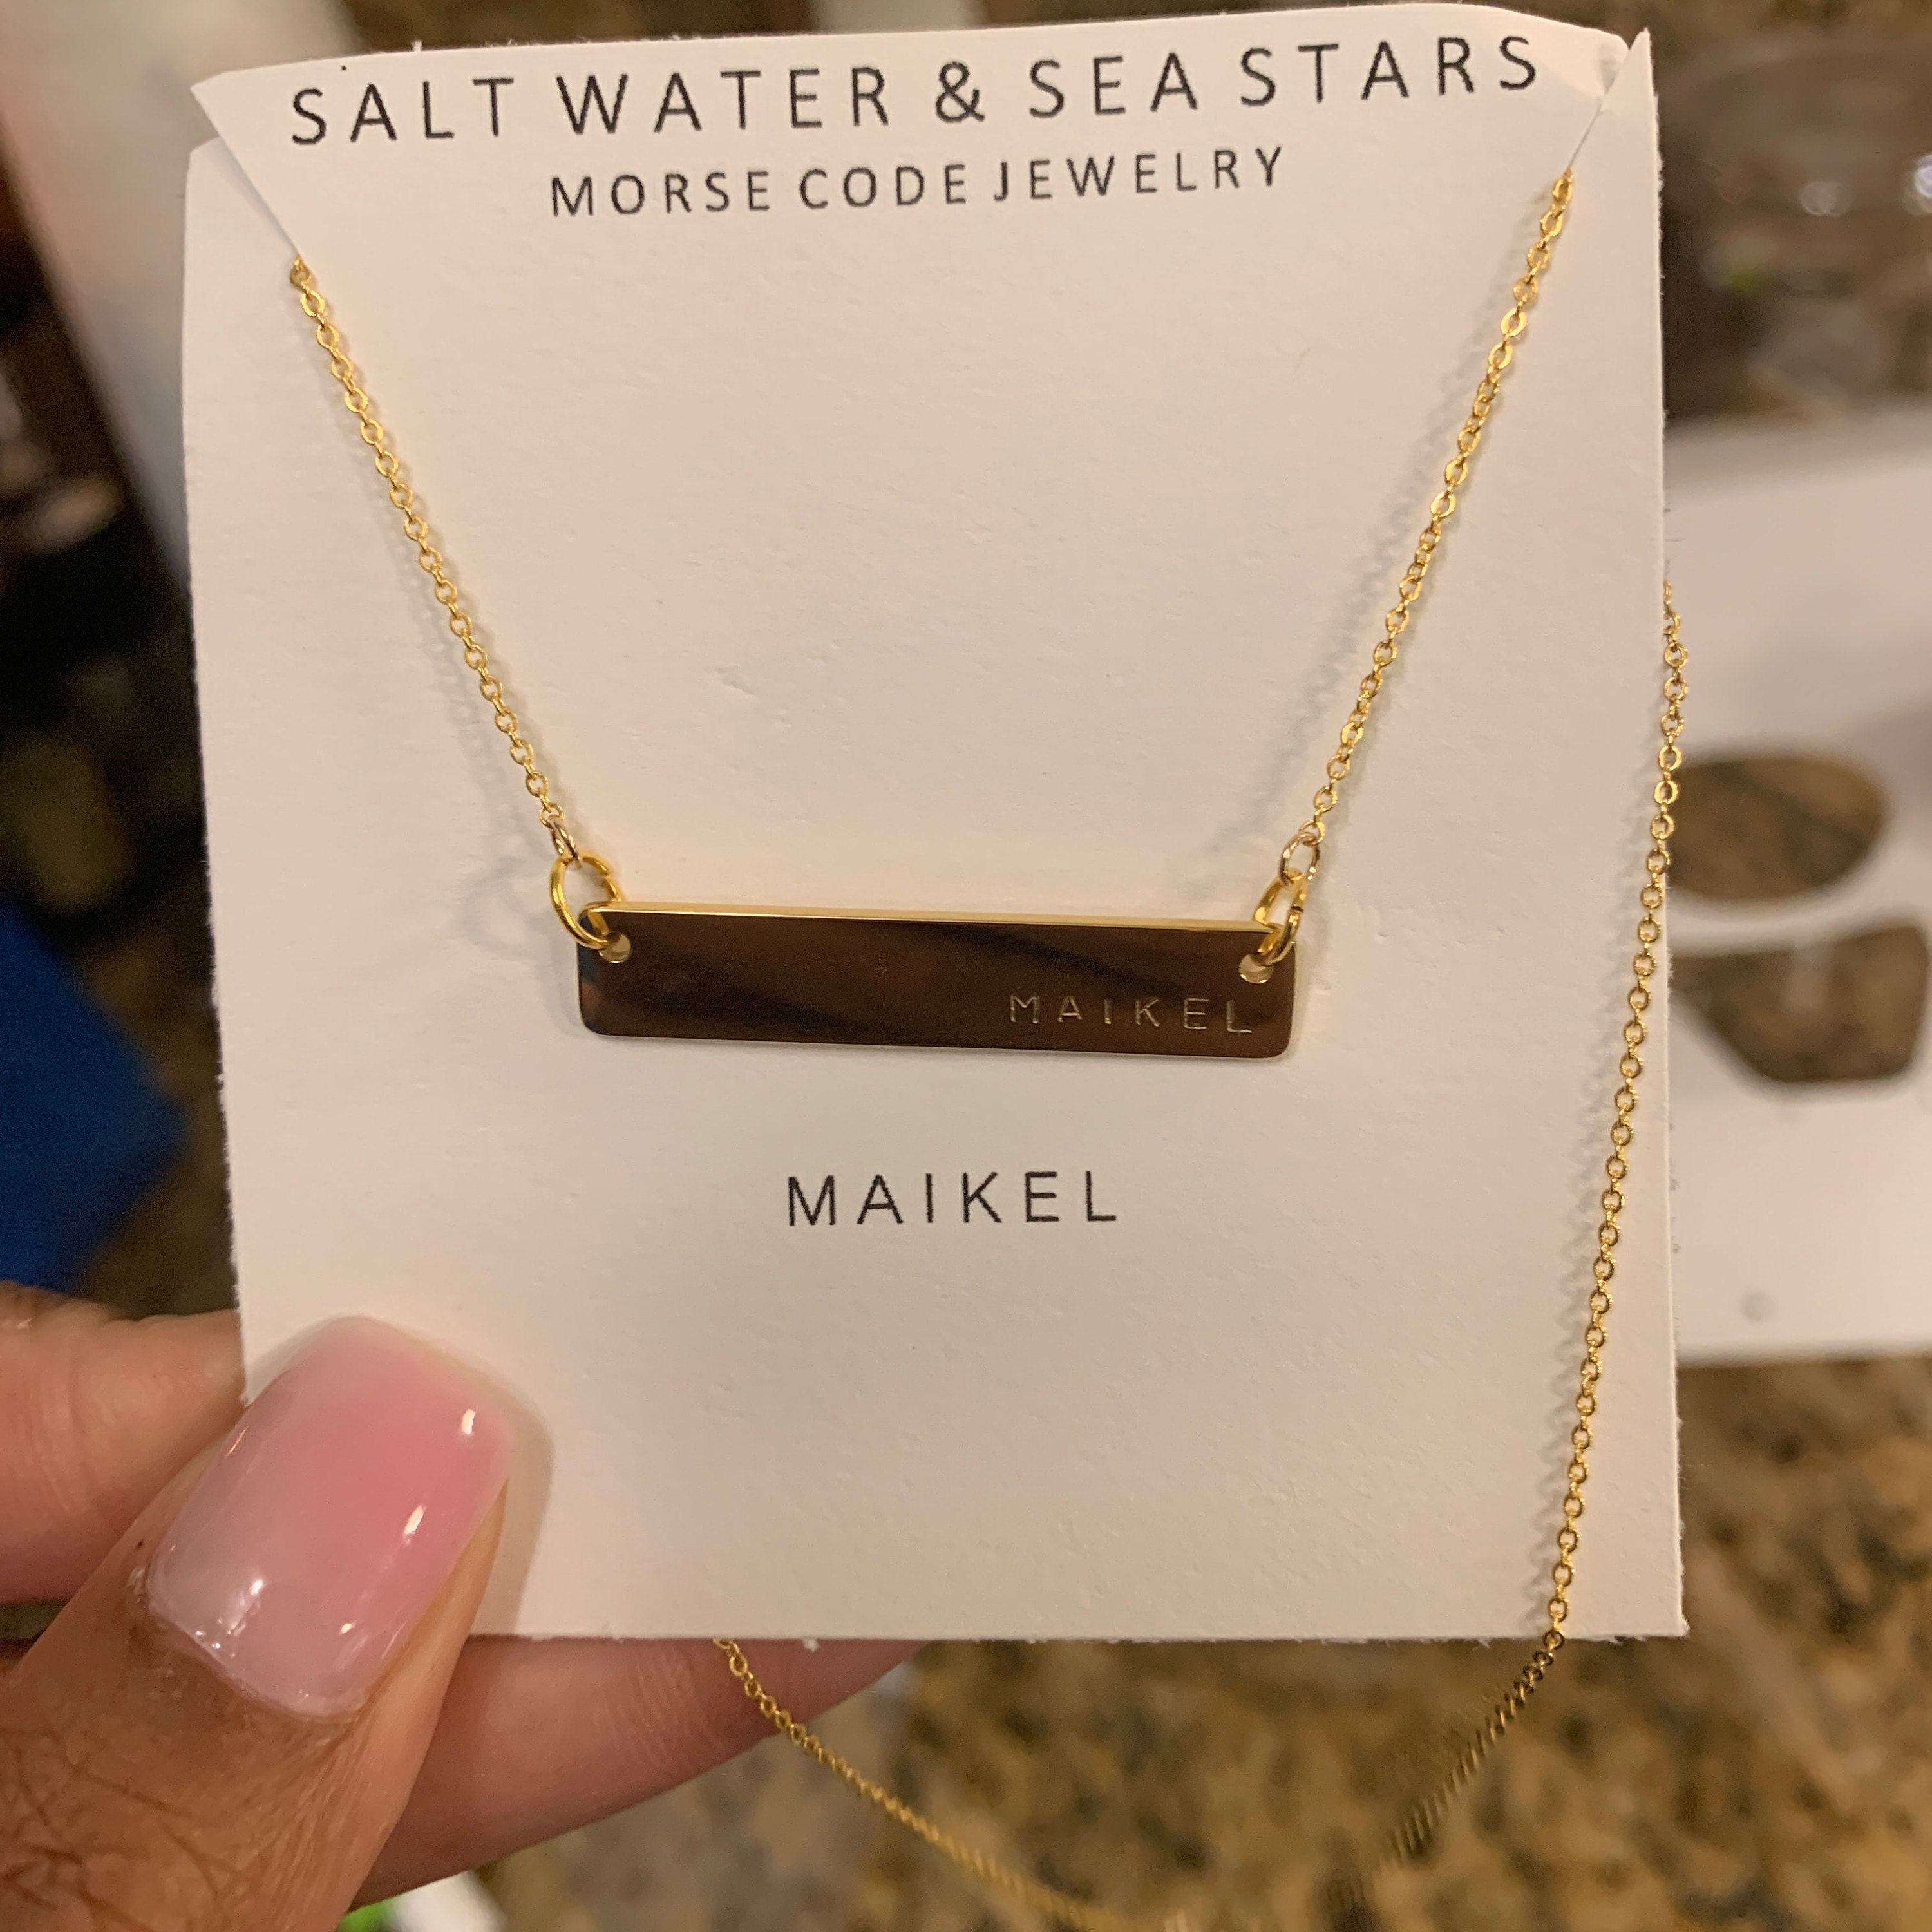 Martricia Johnson added a photo of their purchase